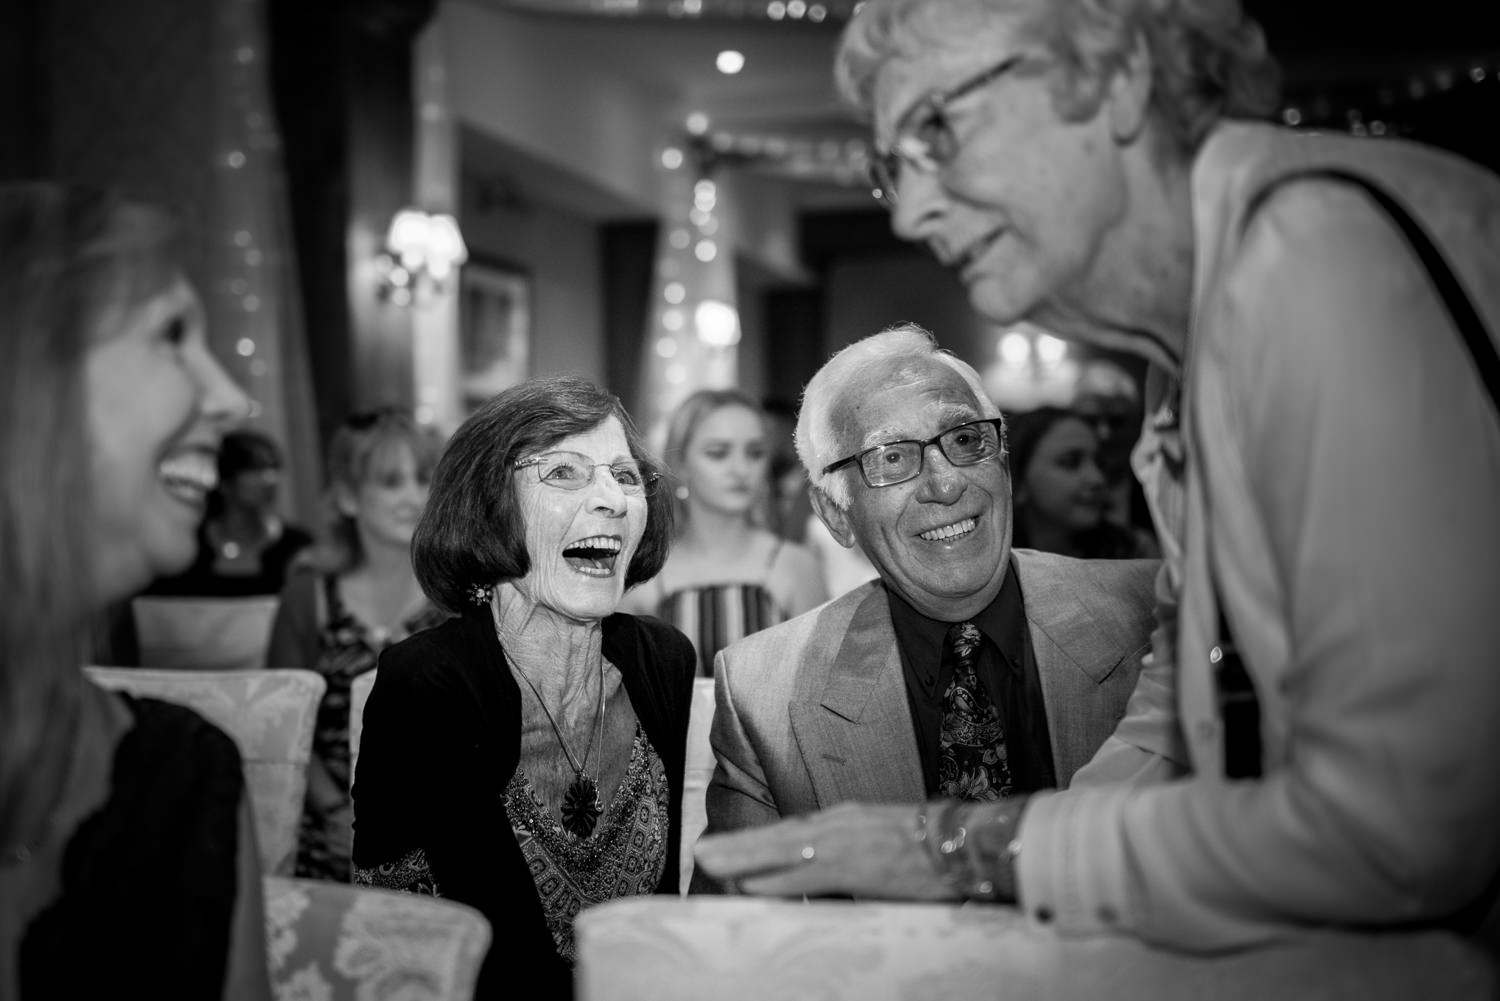 Guests at Ashdown Park Hotel share a joke before the wedding